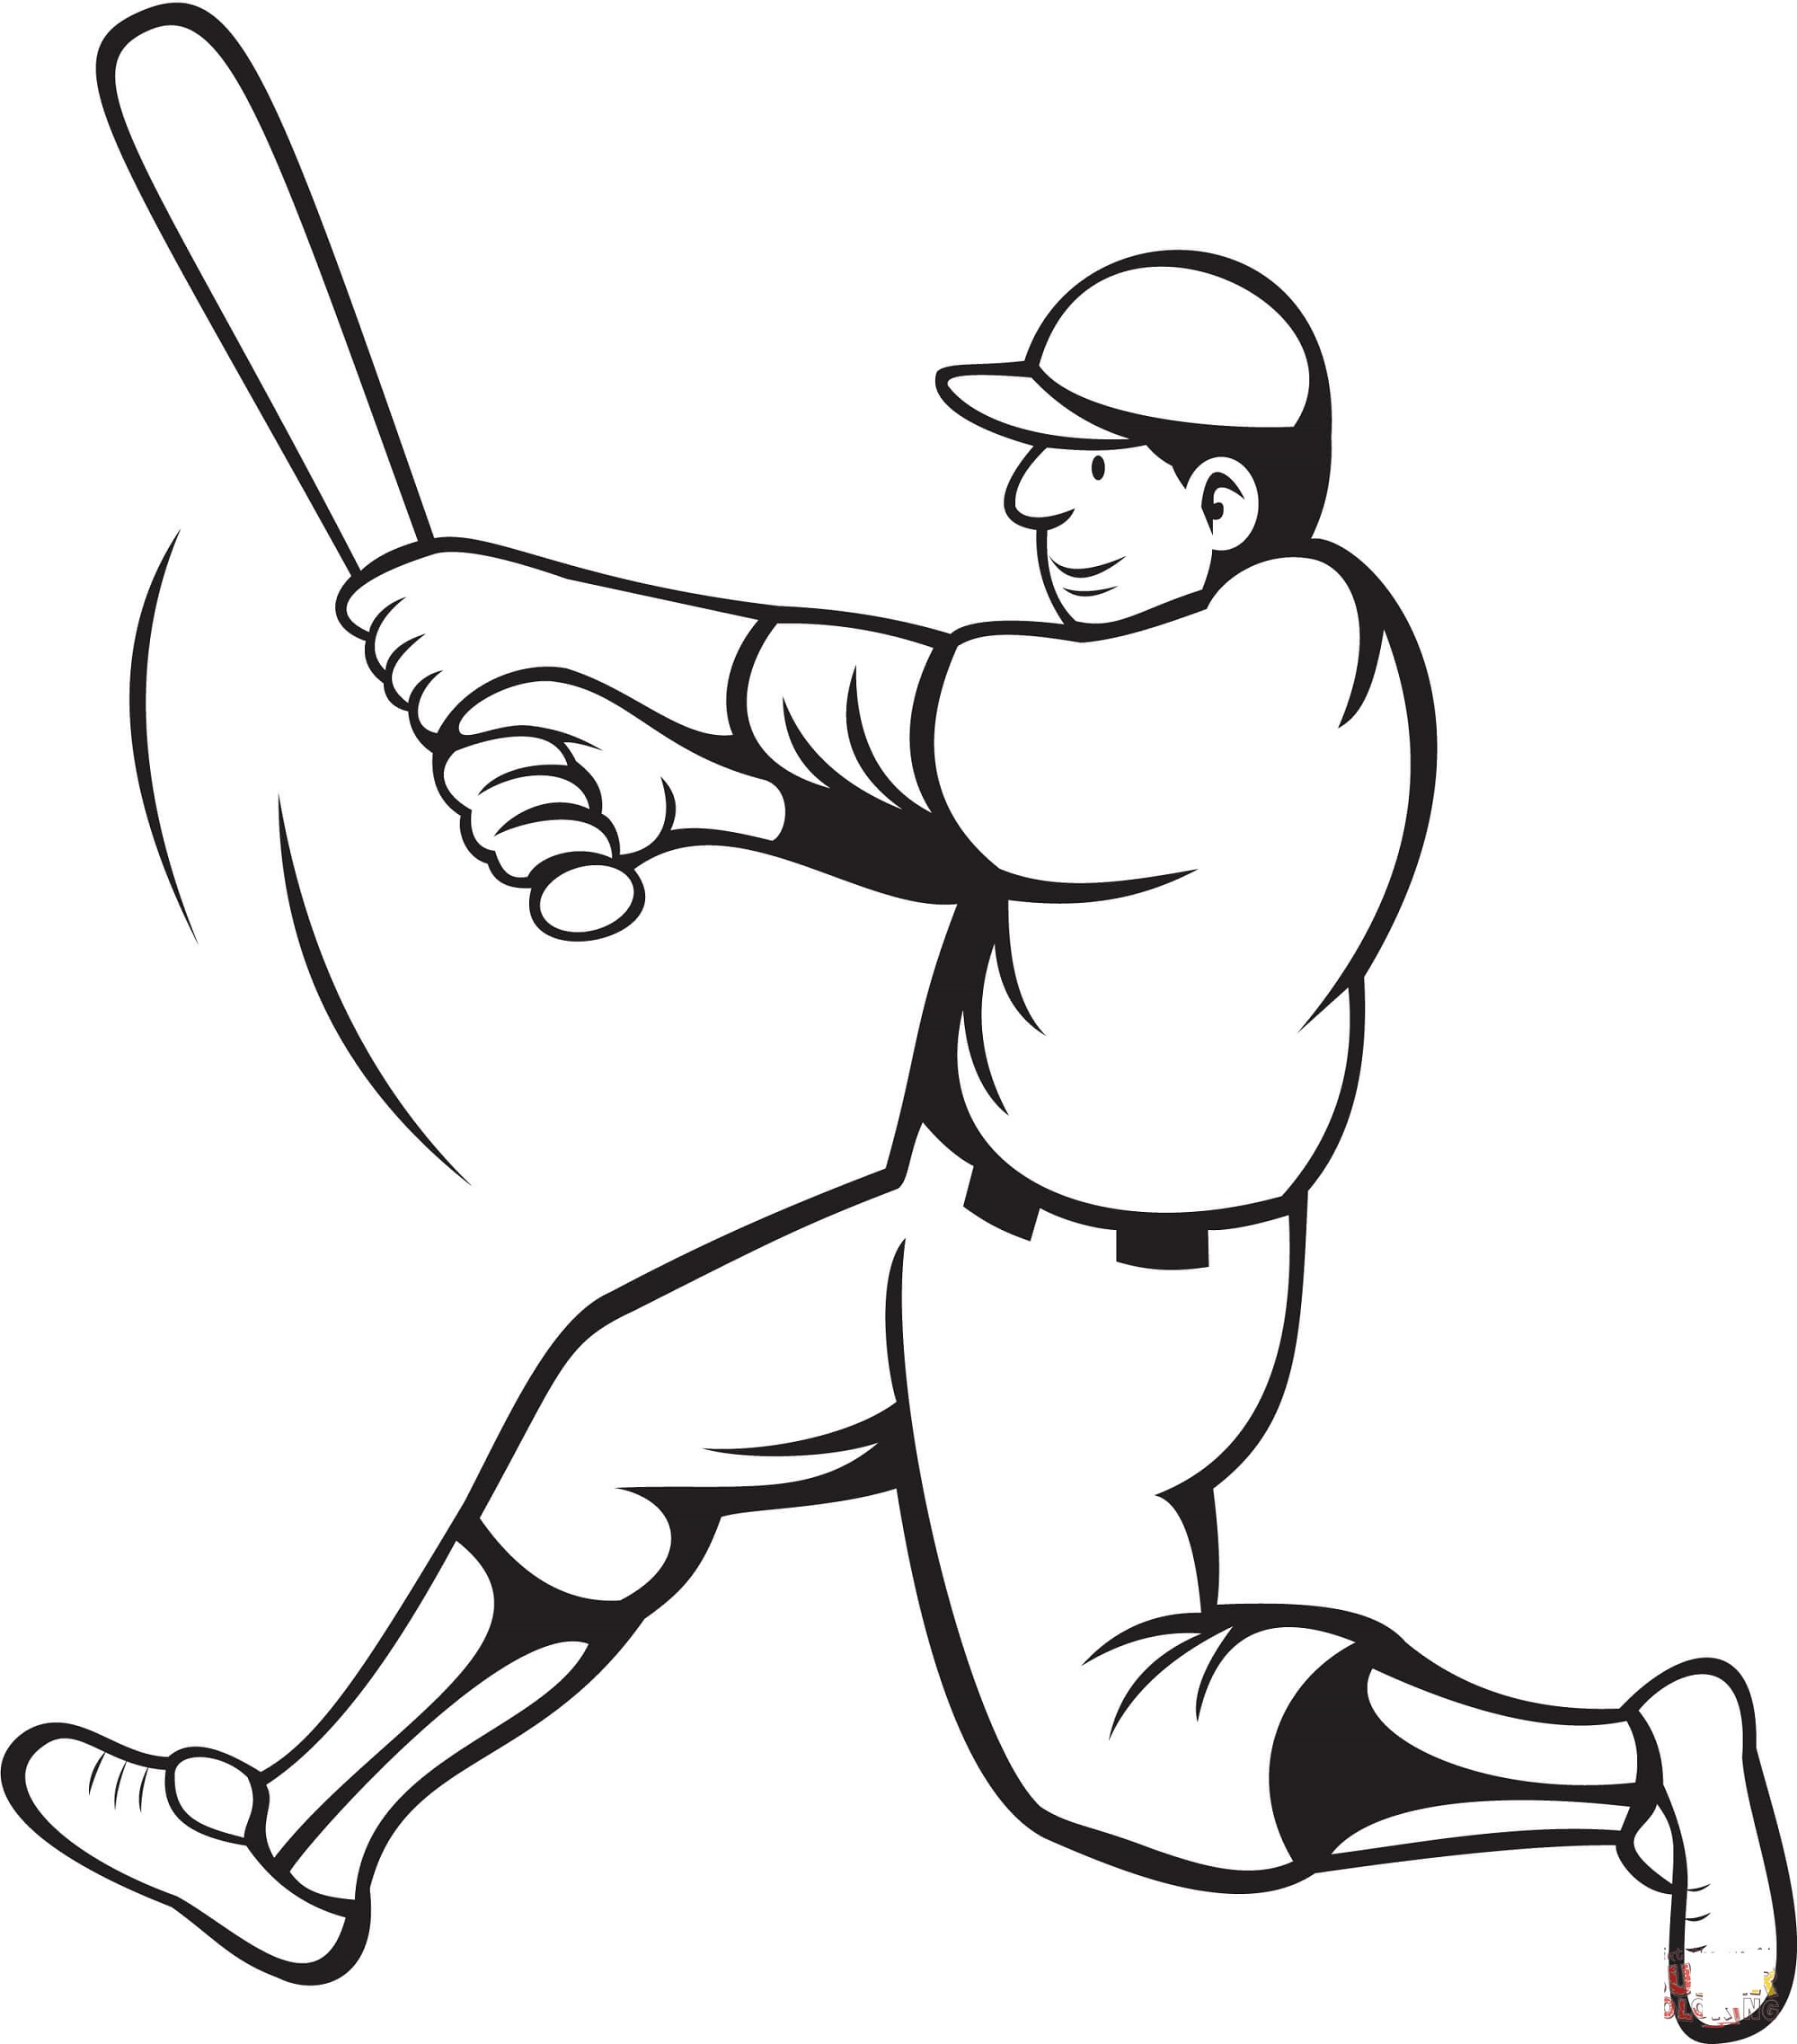 baseball-color-pages-player